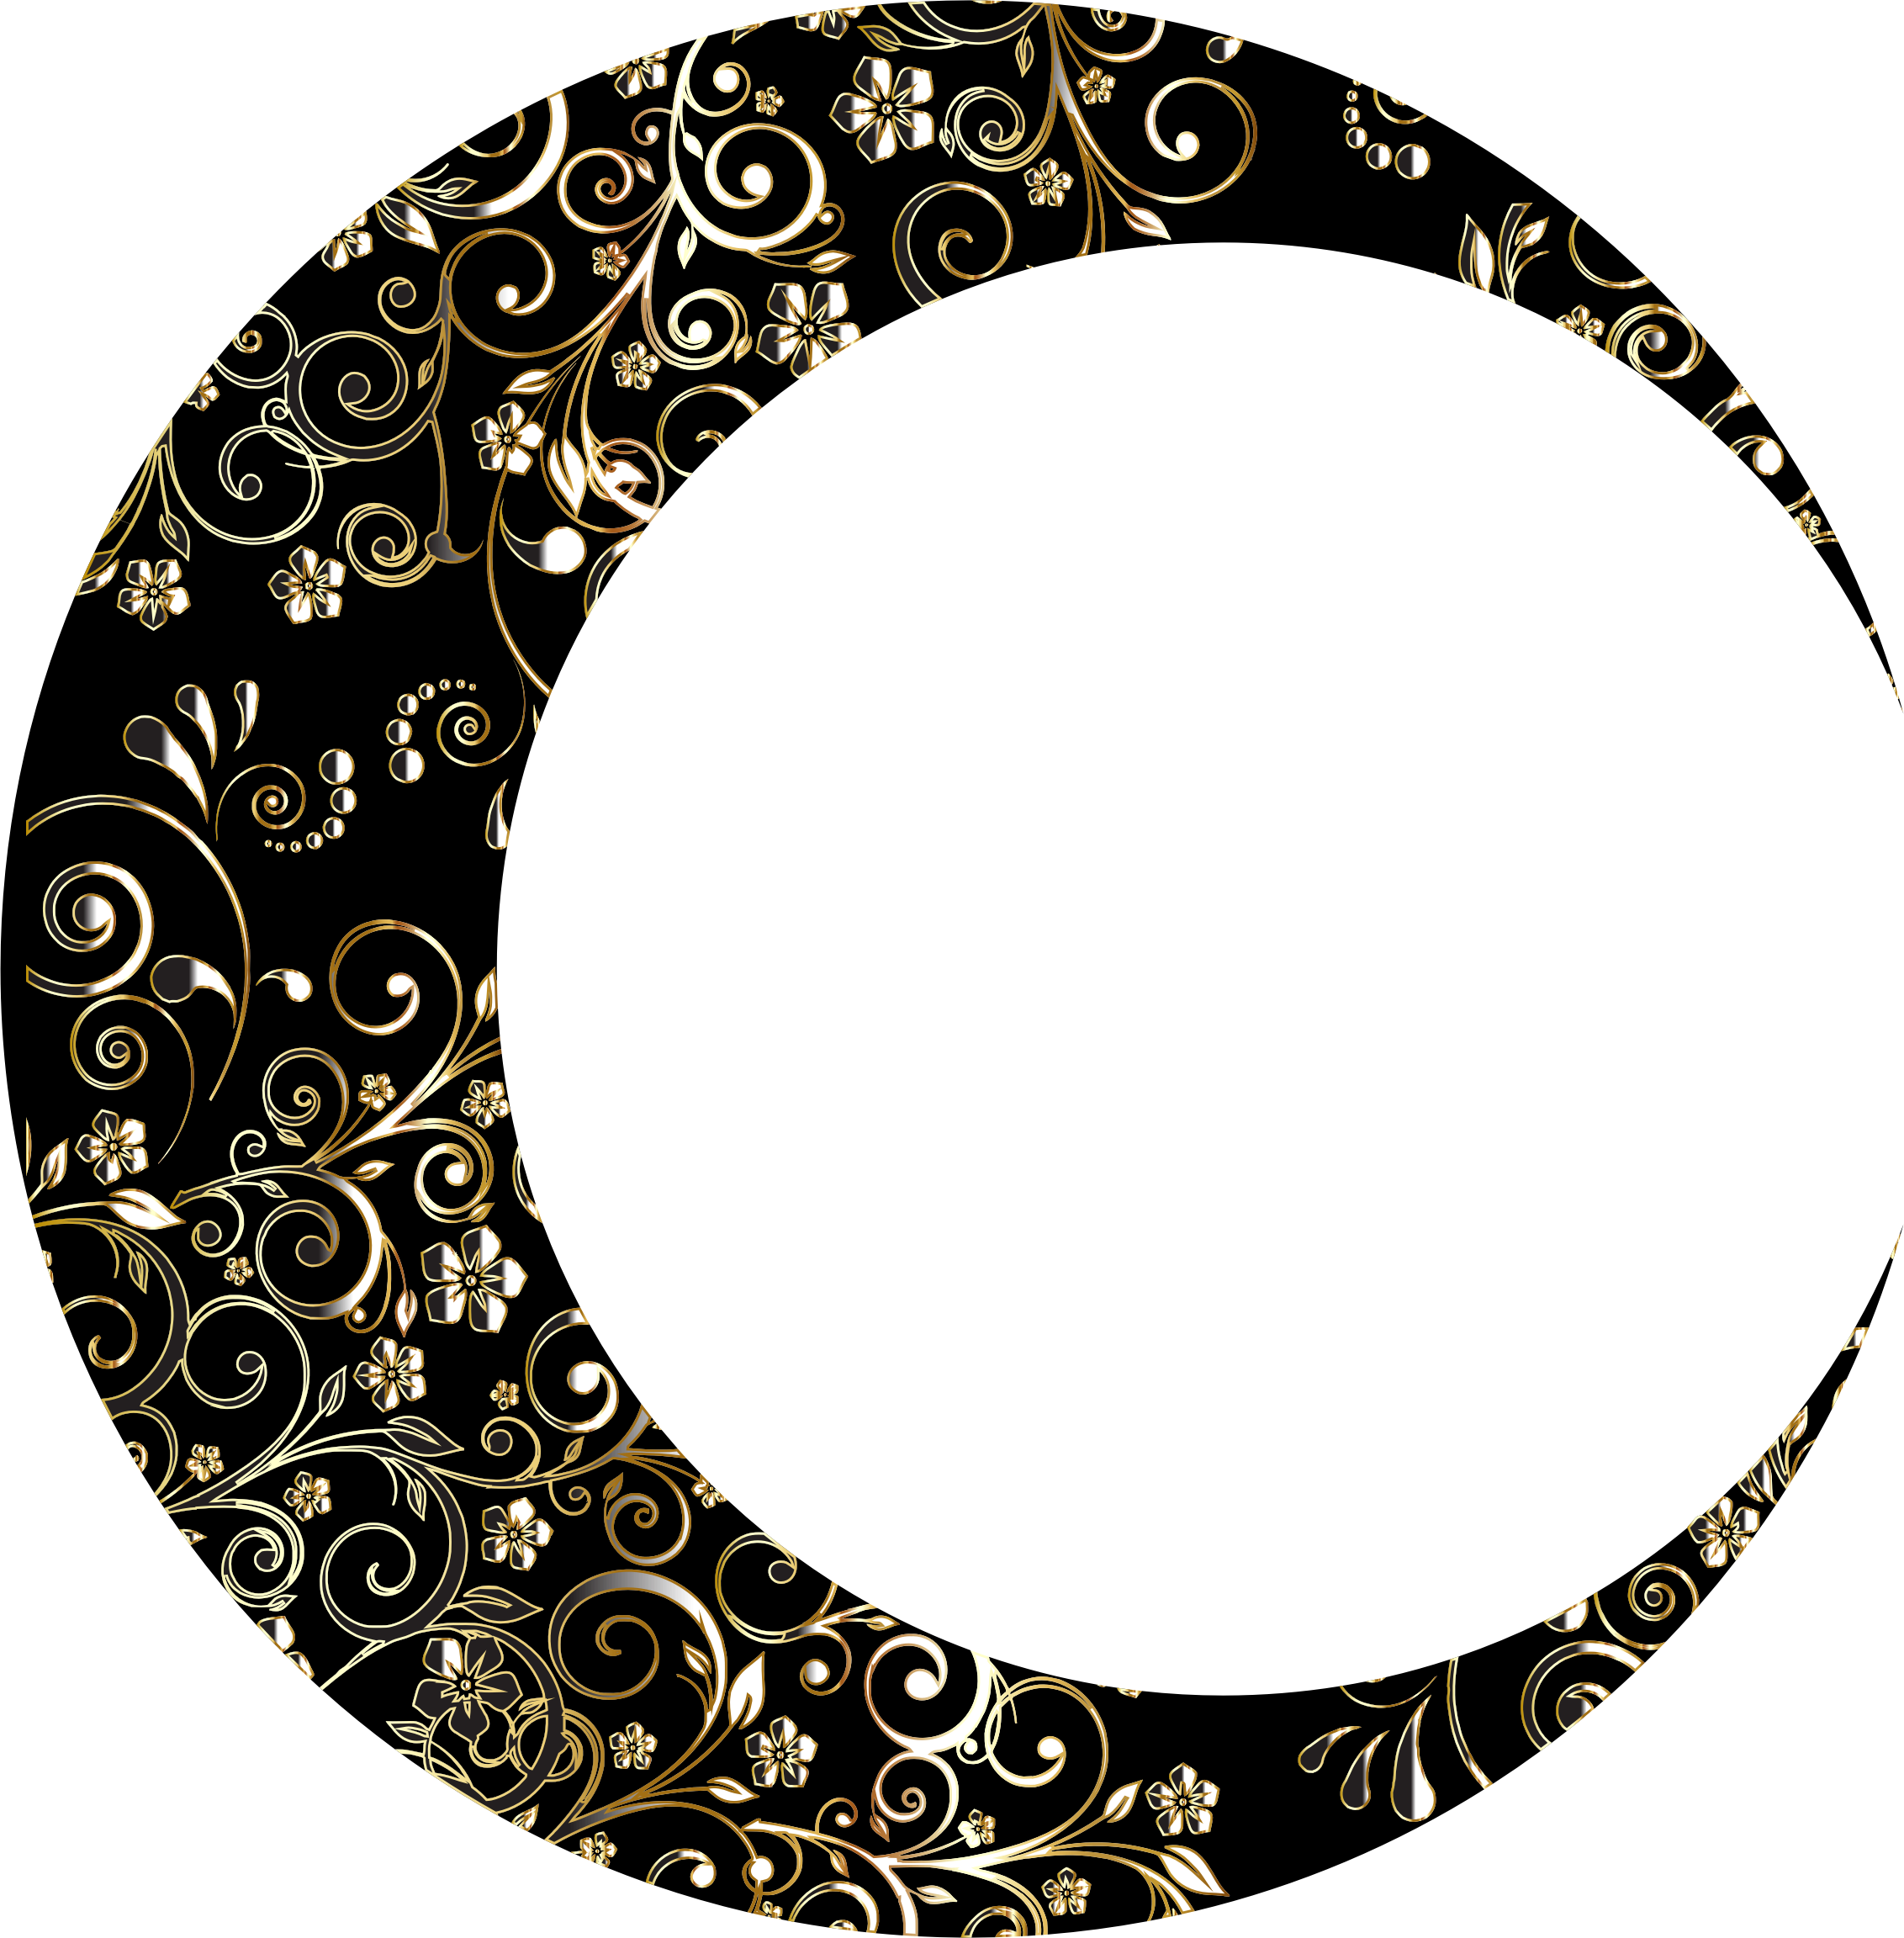 2264x2304 Gold Floral Crescent Moon Mark Ii 12 Icons Png